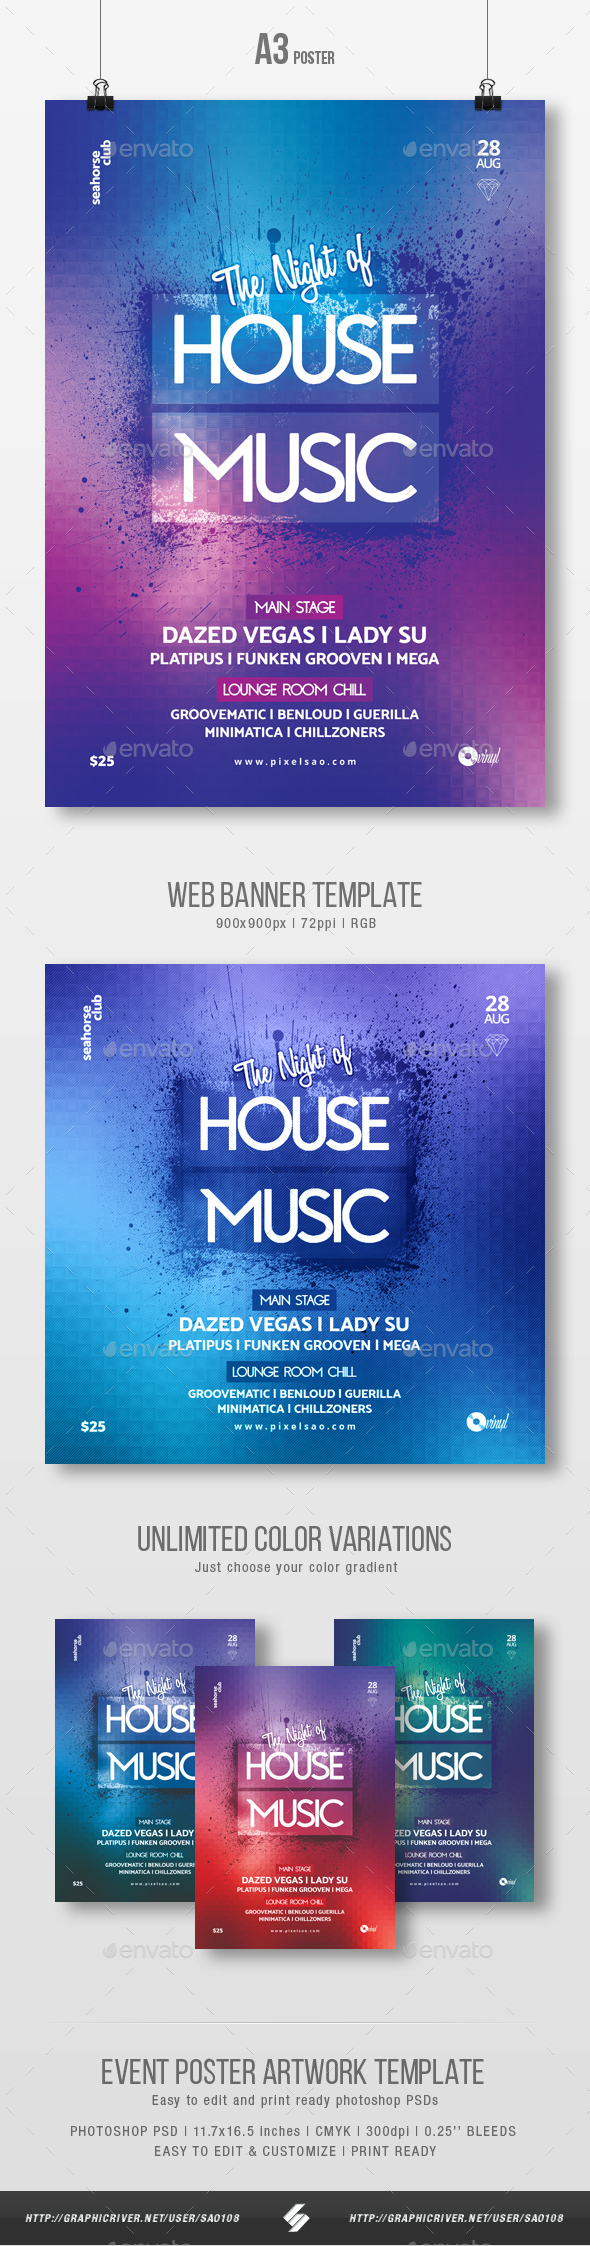 House Music Party Flyer / Poster Template A3 - Clubs & Parties Events